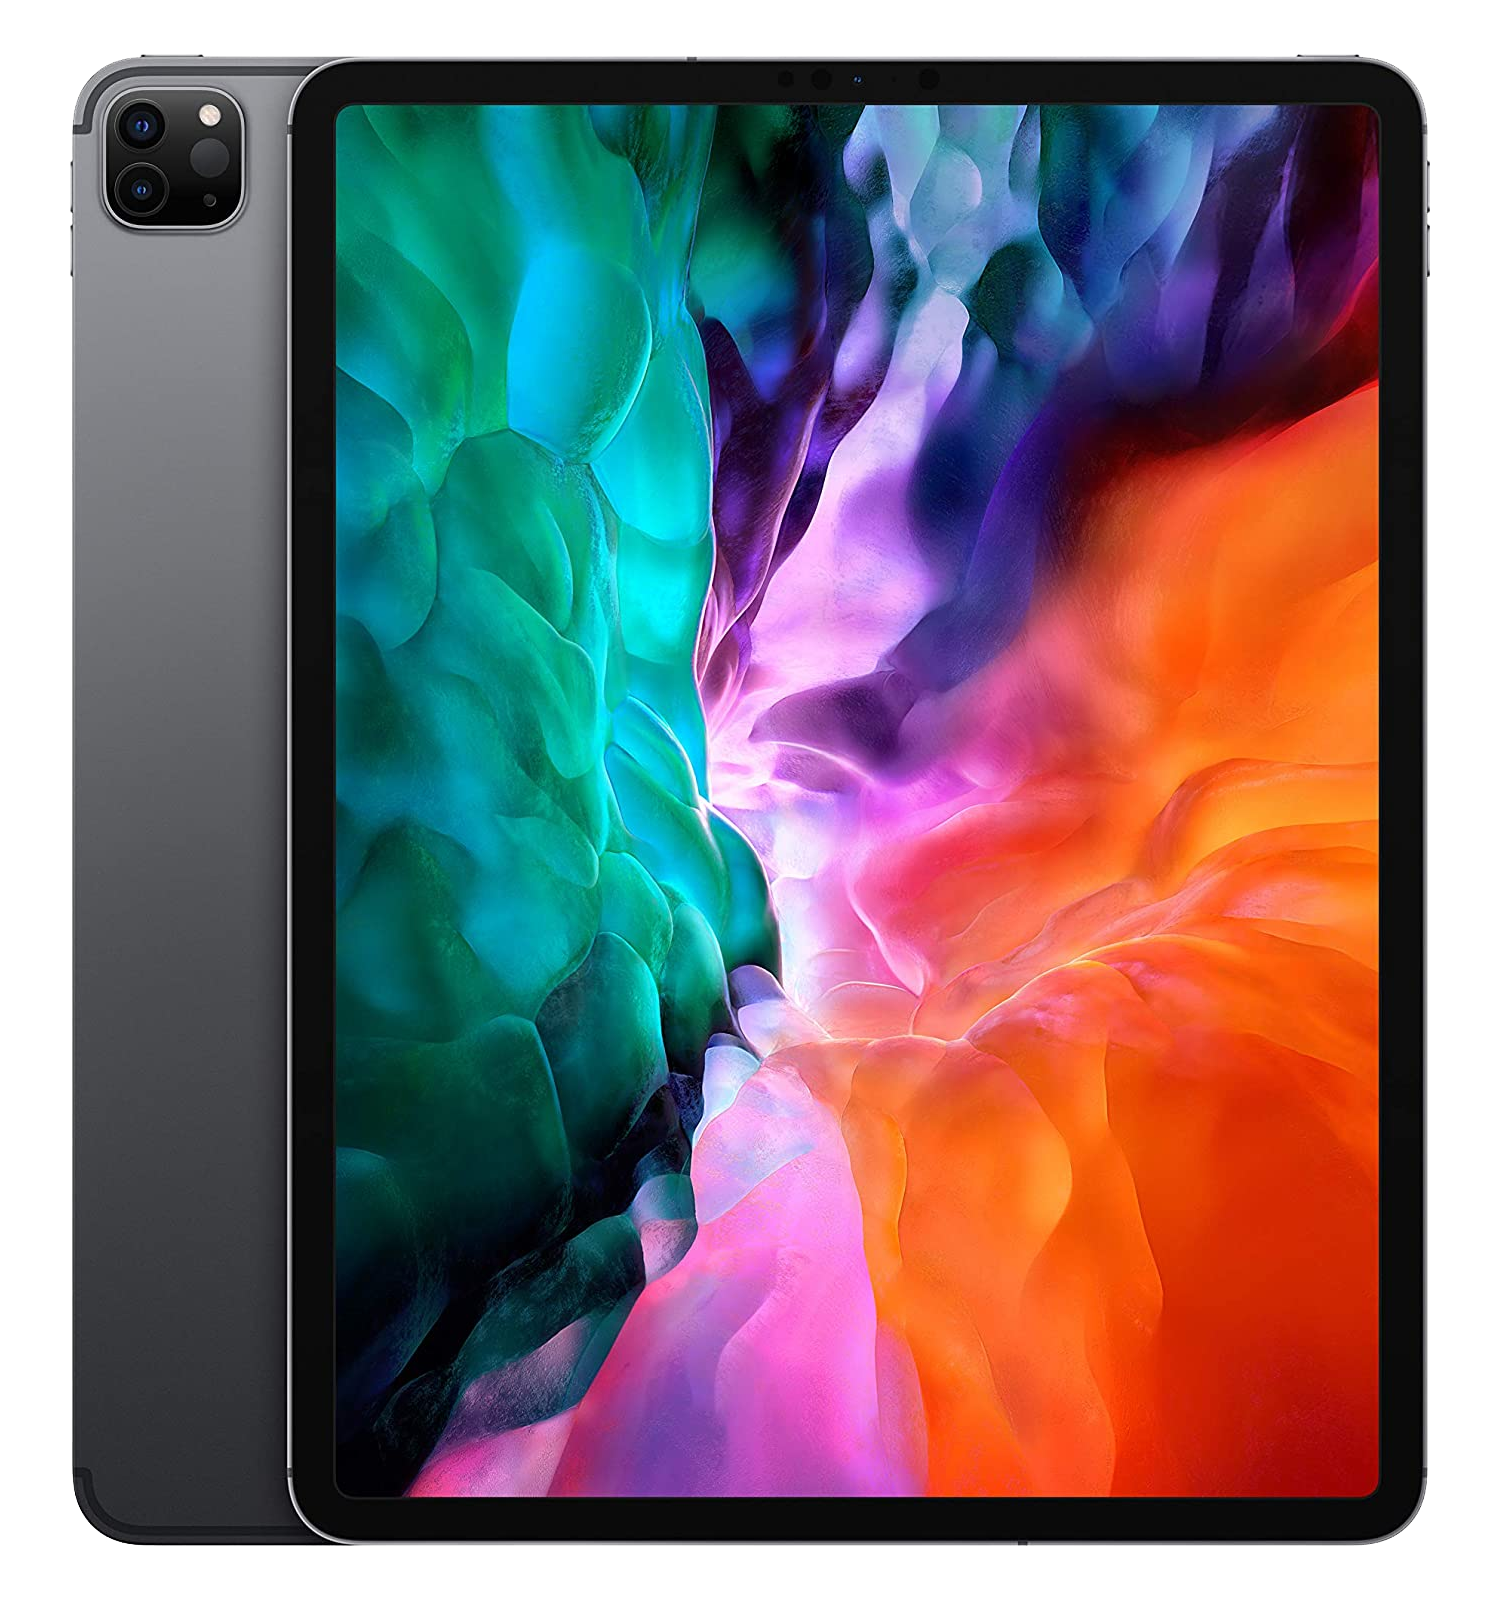 2020 12.9-inch iPad Pro in Space Gray